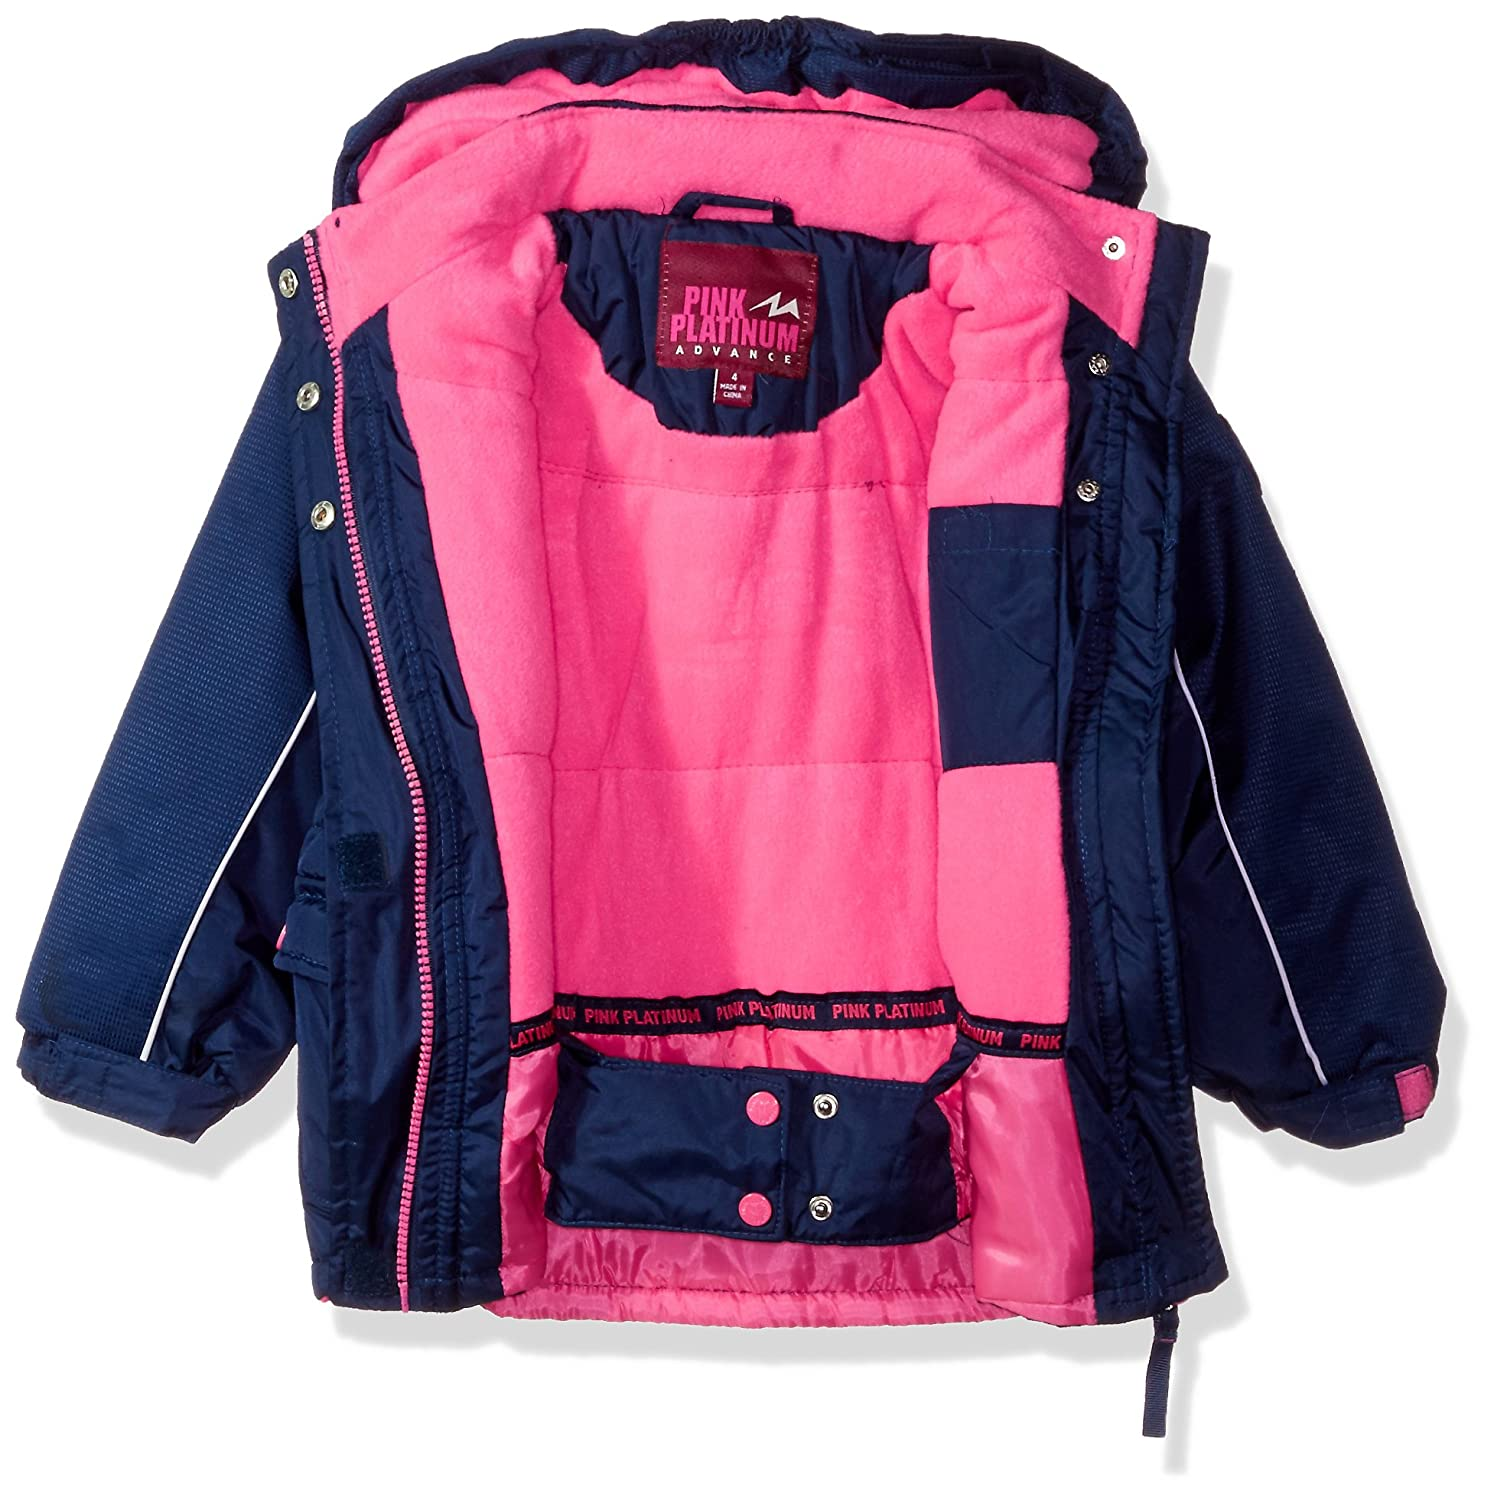 quilted snowsuit jacket com platinum ip little suit snowboard pink girls bib walmart ski